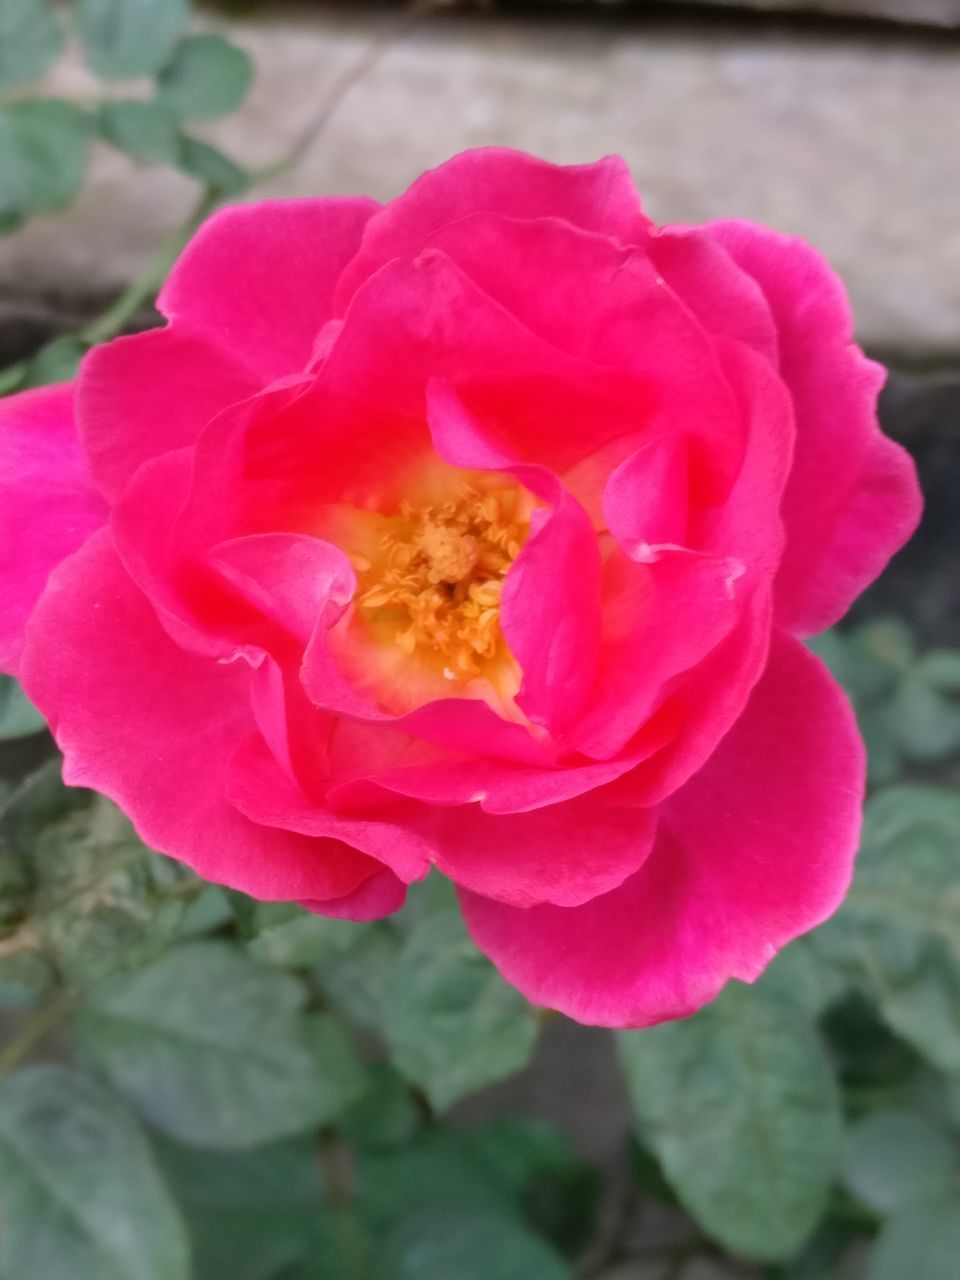 flower, petal, fragility, beauty in nature, nature, flower head, pink color, plant, freshness, growth, close-up, no people, wild rose, outdoors, rose - flower, day, blooming